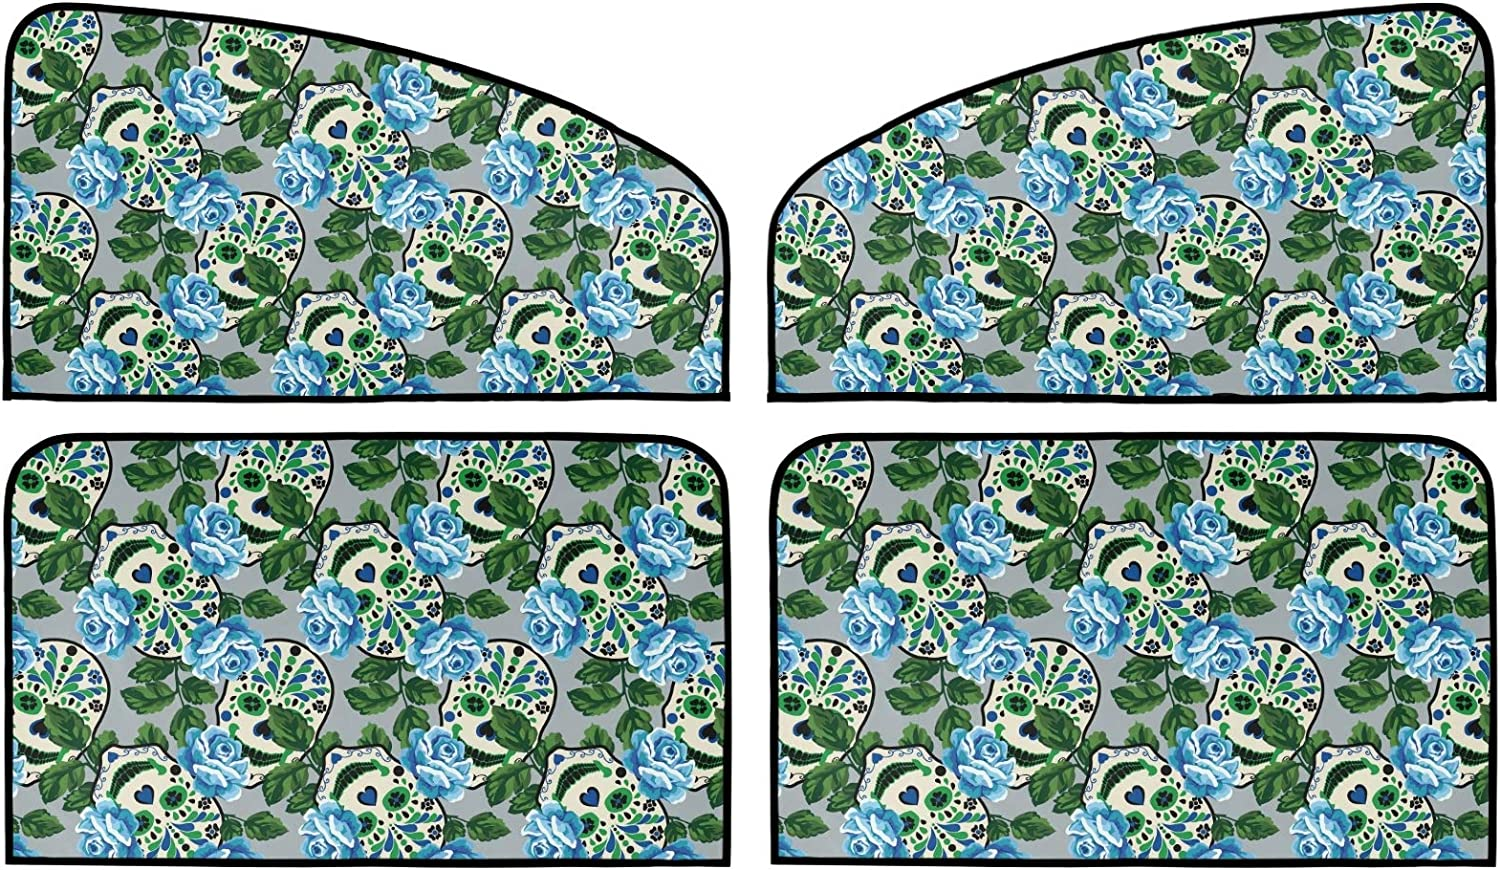 Floral Skull Car Sun Shade 4 2021new Max 61% OFF shipping free Summer Universal Ma Pack Insulation